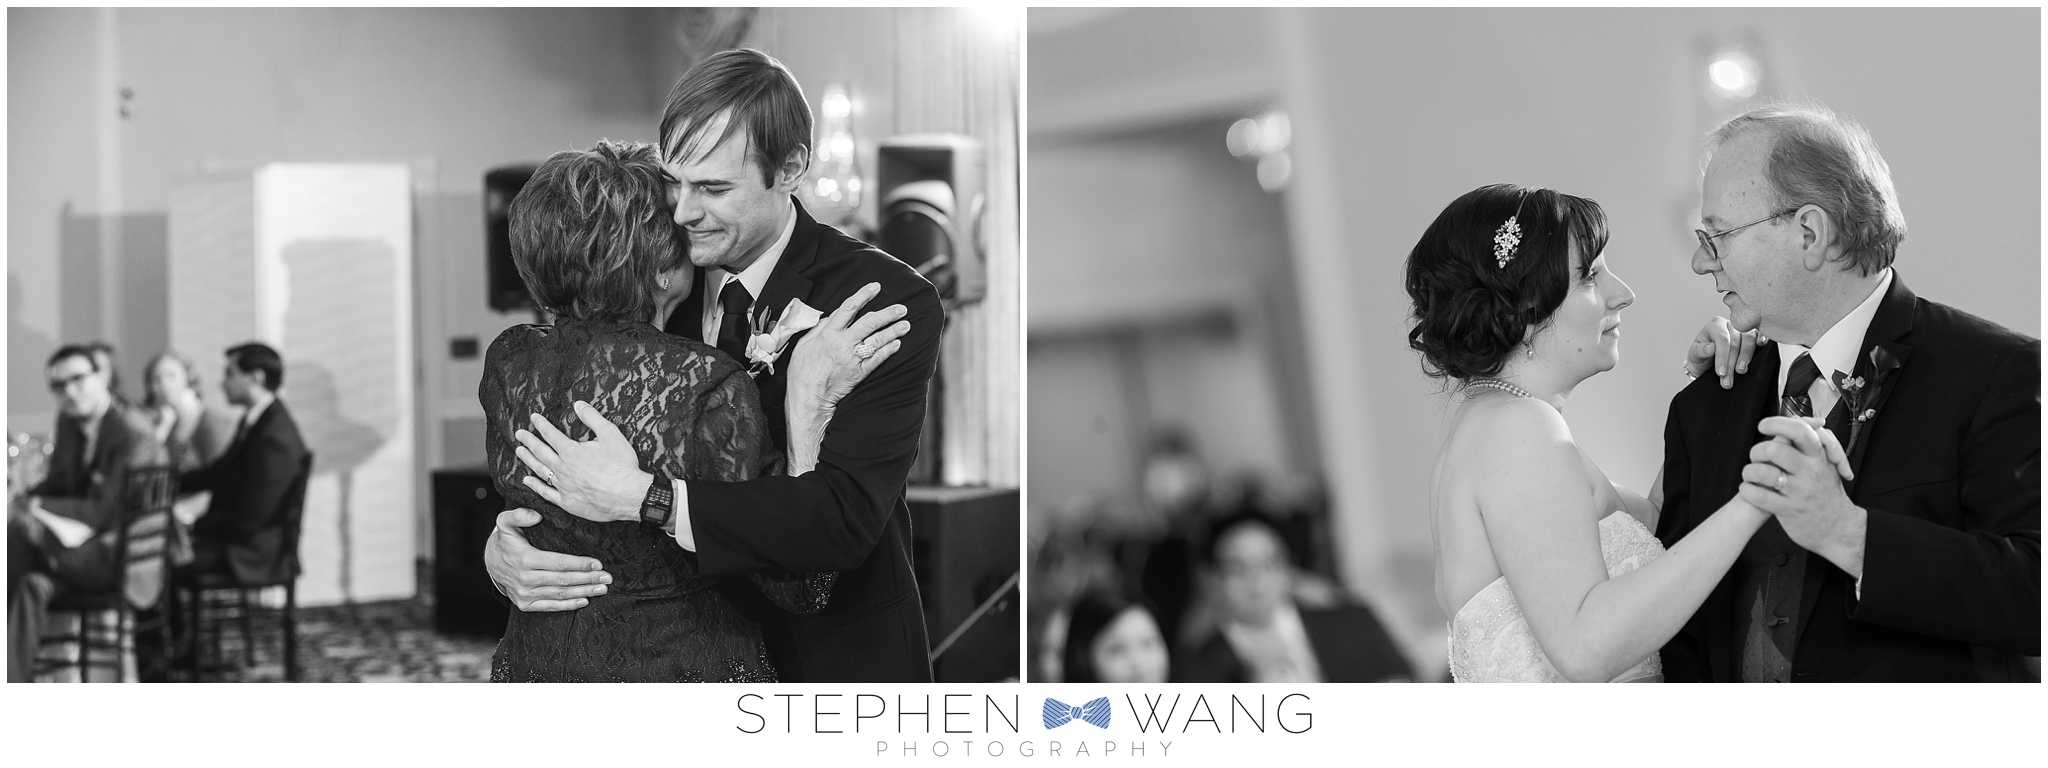 Stephen Wang Photography Wedding Connecticut CT Belle Terrace Avon Old Farms New England Wedding New Haven-11-17_0026.jpg